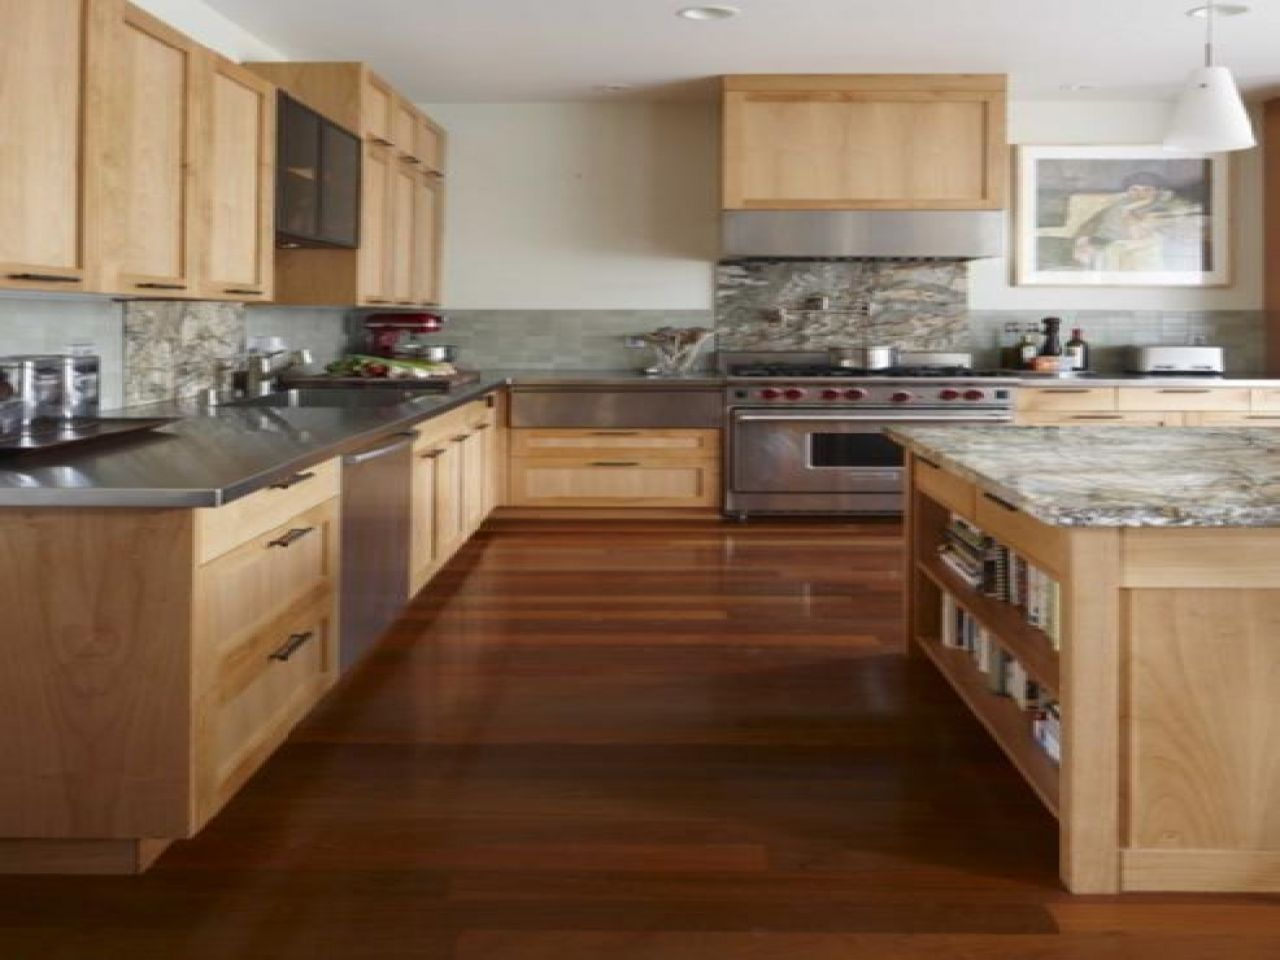 dark wood floor with light wood cabinets google search in 2020 maple kitchen cabinets on kitchen cabinets natural wood id=99882